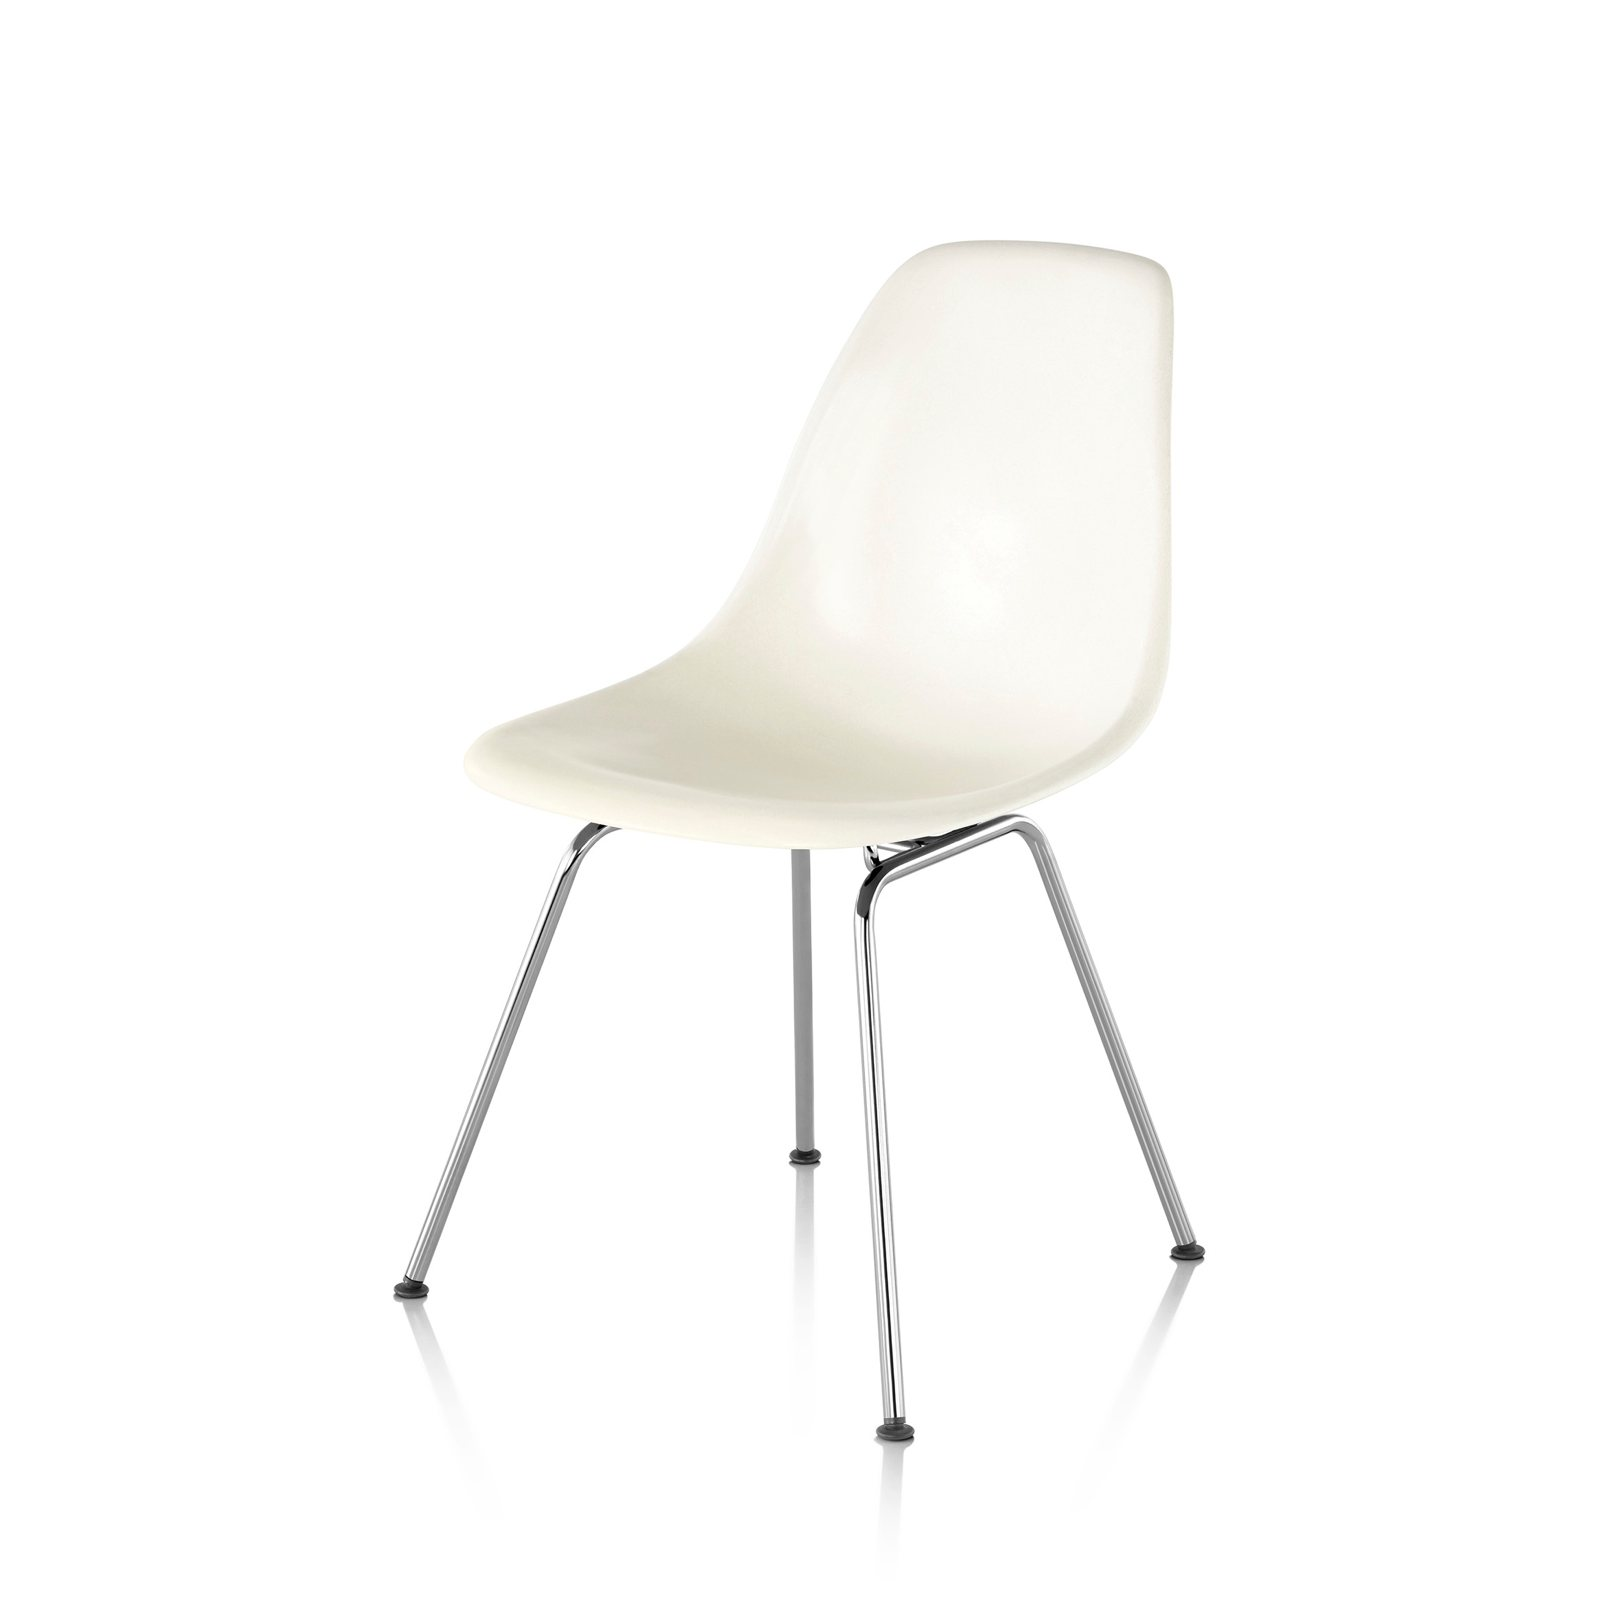 eames molded side chair throne rental nyc plastic 4 leg base by charles